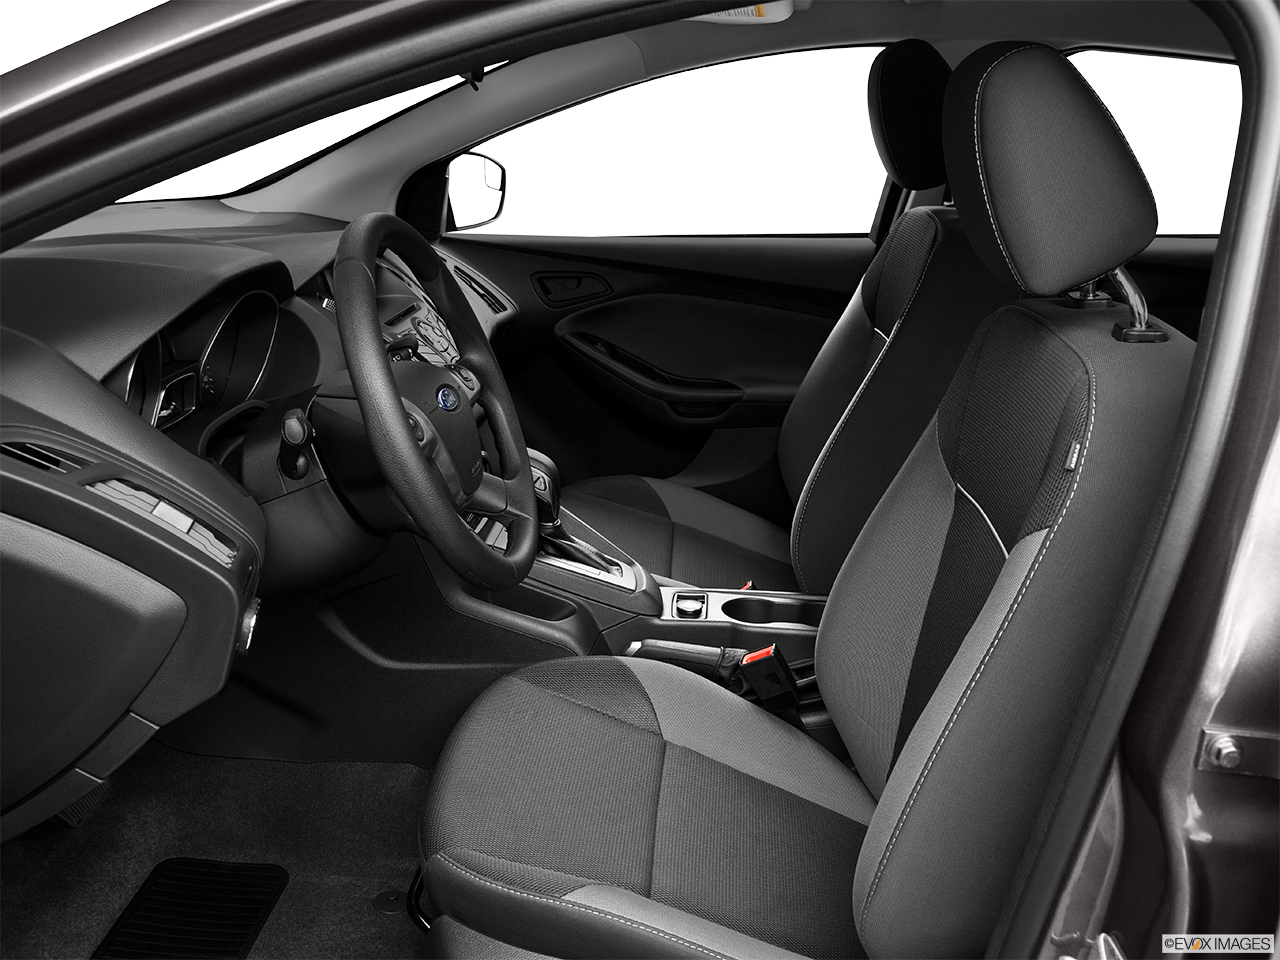 2014 ford focus sedan s front seats from drivers side - Ford Focus 2014 Sedan Interior